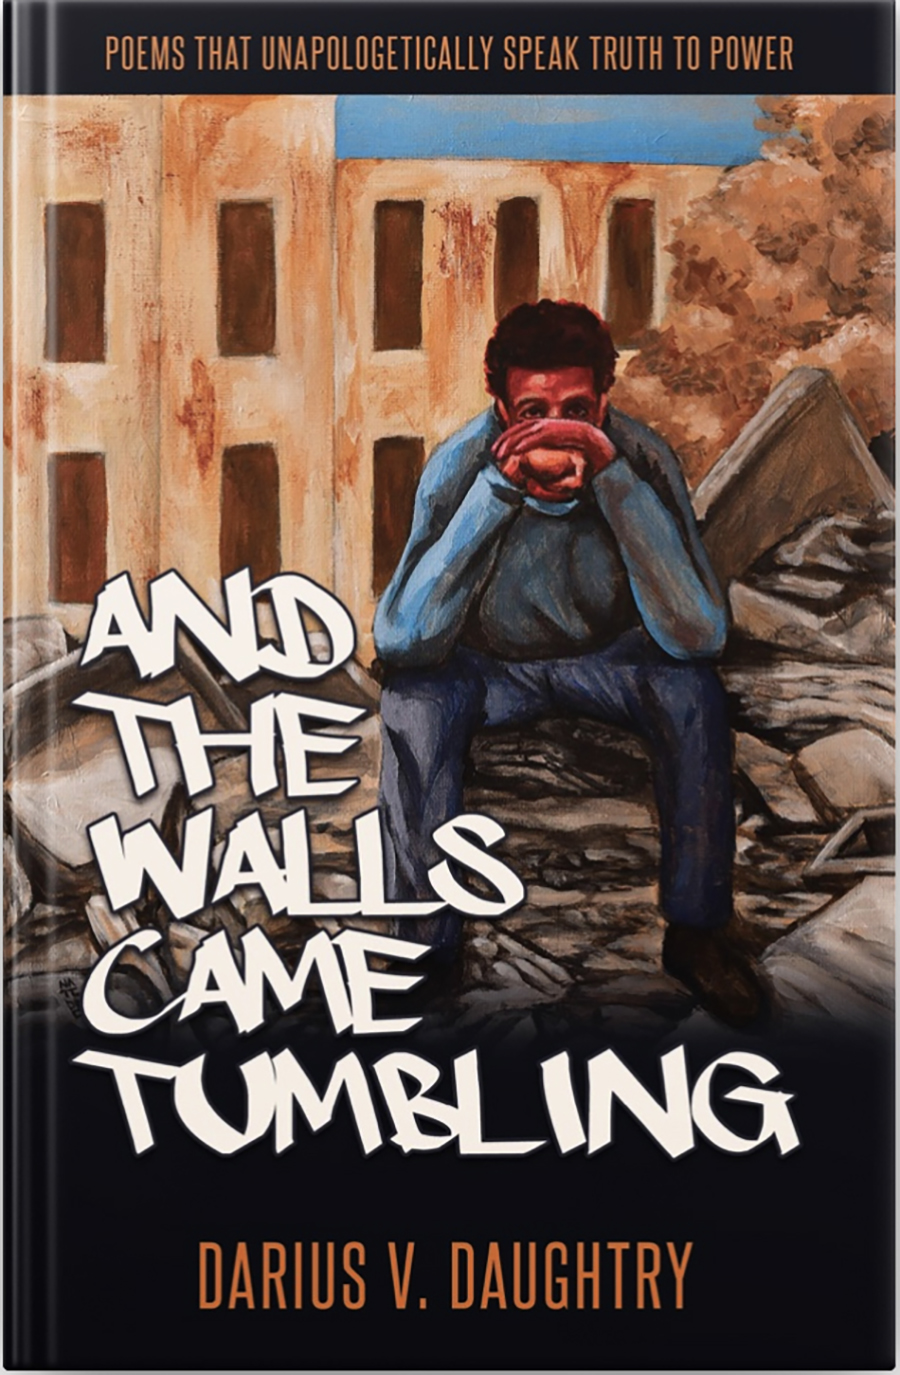 Darius Daughtry And the Walls Came Tumbling